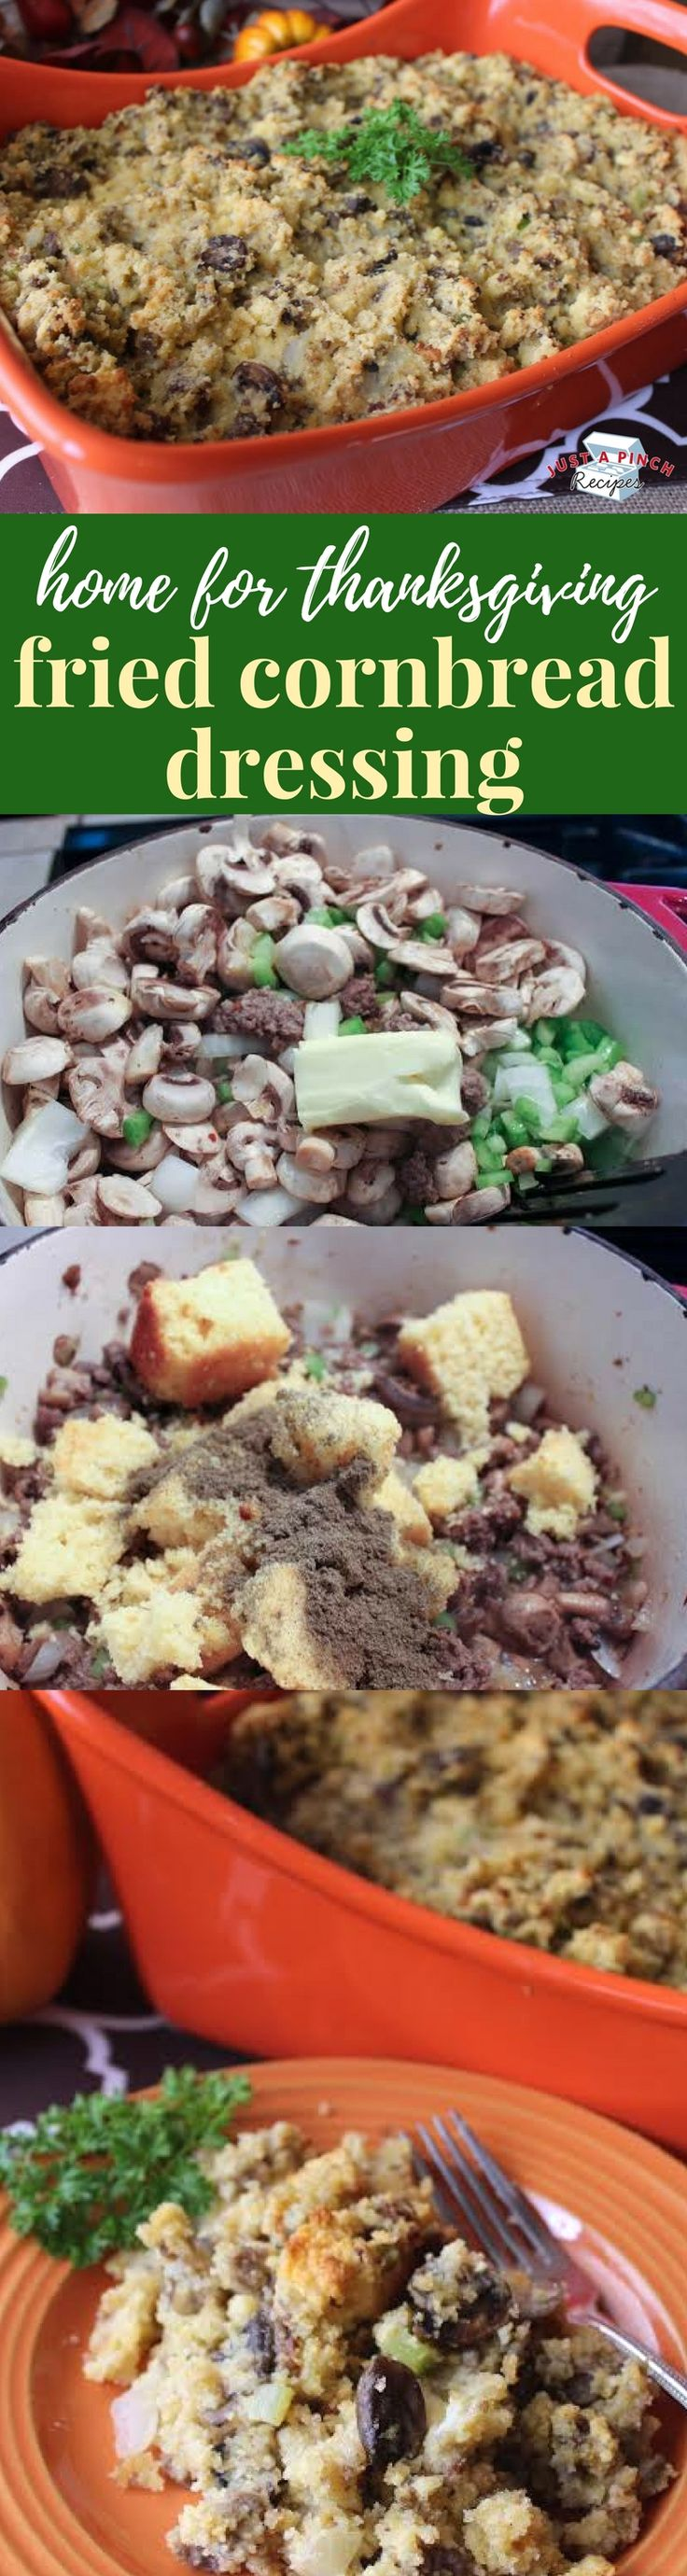 Home For Thanksgiving Fried Cornbread Dressing #thanksgivingrecipes #stuffing